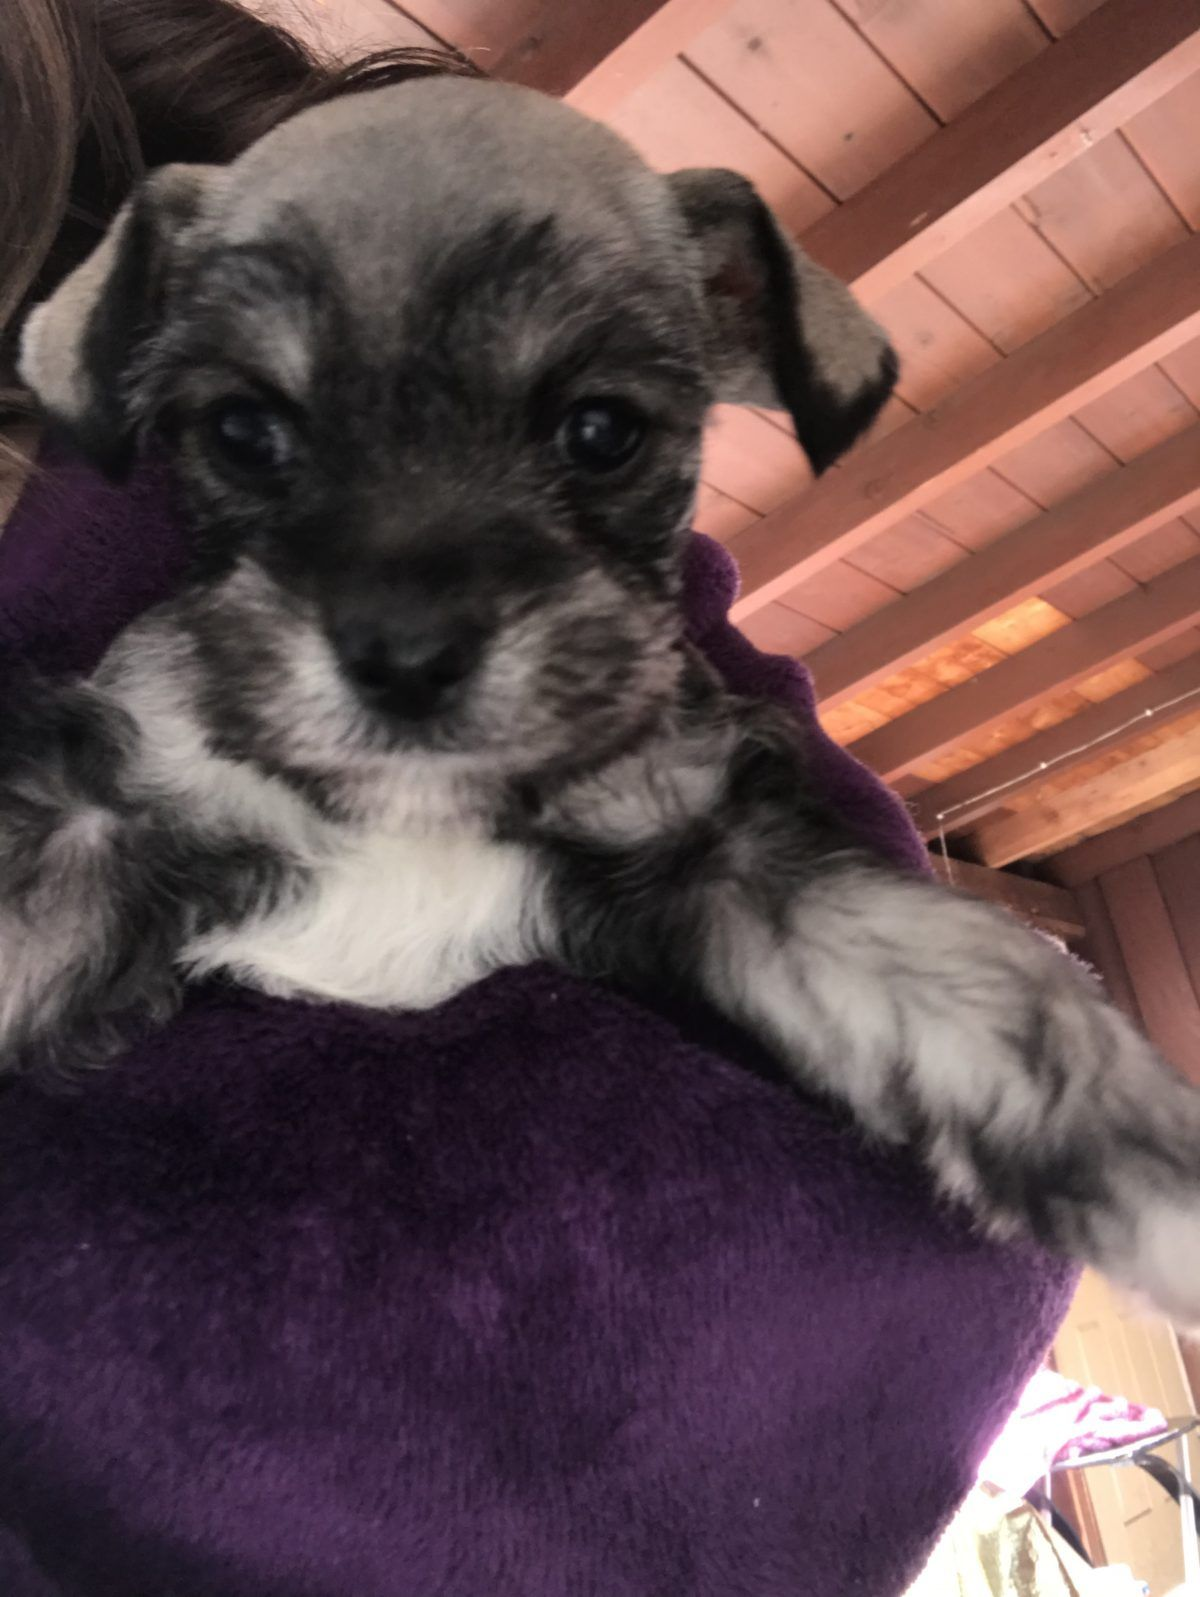 Rocky A Devoted Male Miniature Schnauzer Puppy For Sale From San Diego California Miniatureschn Miniature Schnauzer Puppies Schnauzer Puppy Schnauzer Breed